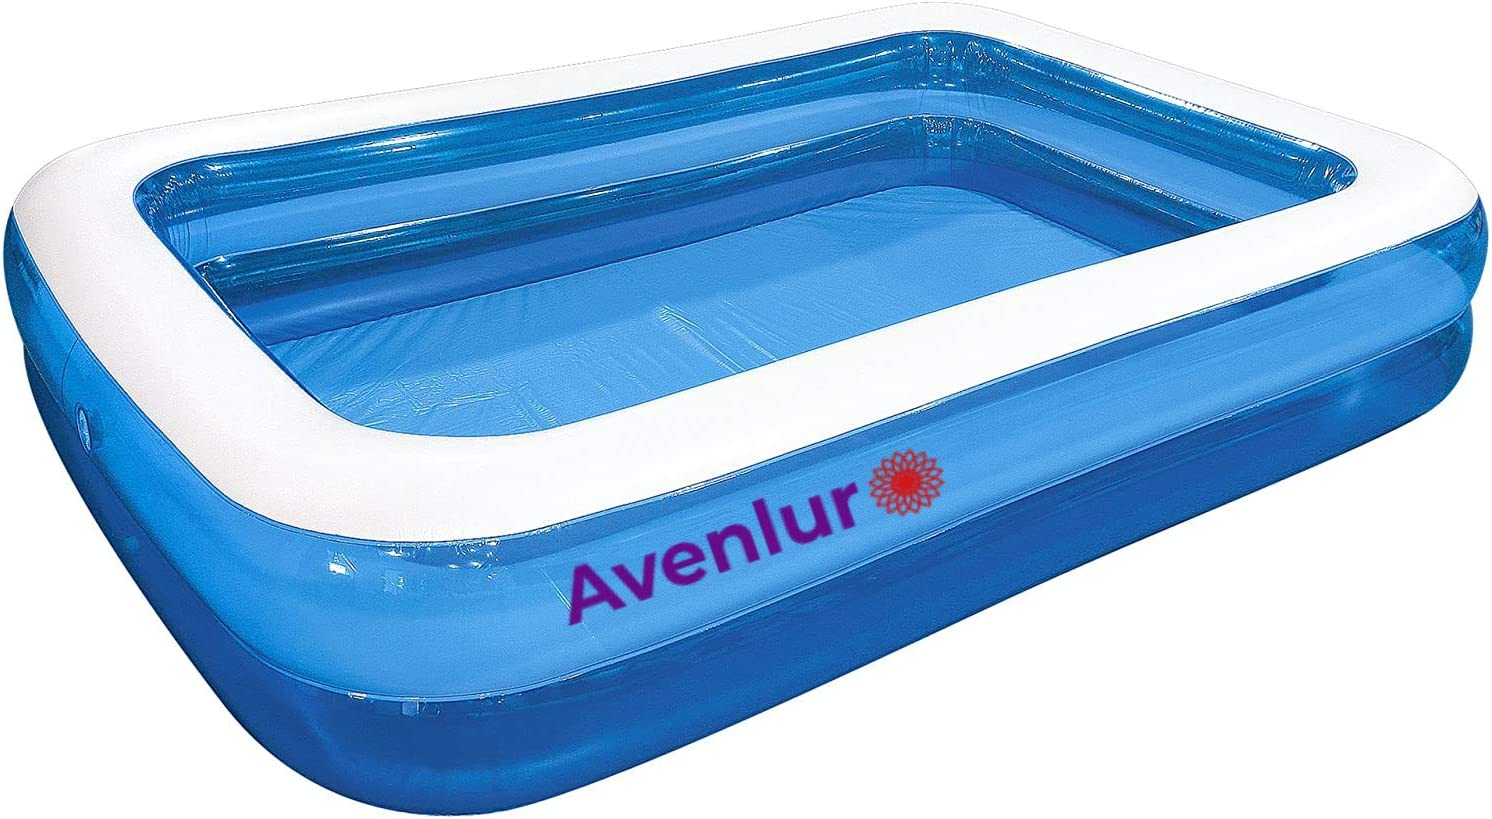 Avenlur Family Inflatable Swimming Pool Kids and Toddlers 120 X 72 X 20 Thick Paddling Pool Summer Water Backyard Pool Party 10 ft Long Backyard Family Pool for Adults